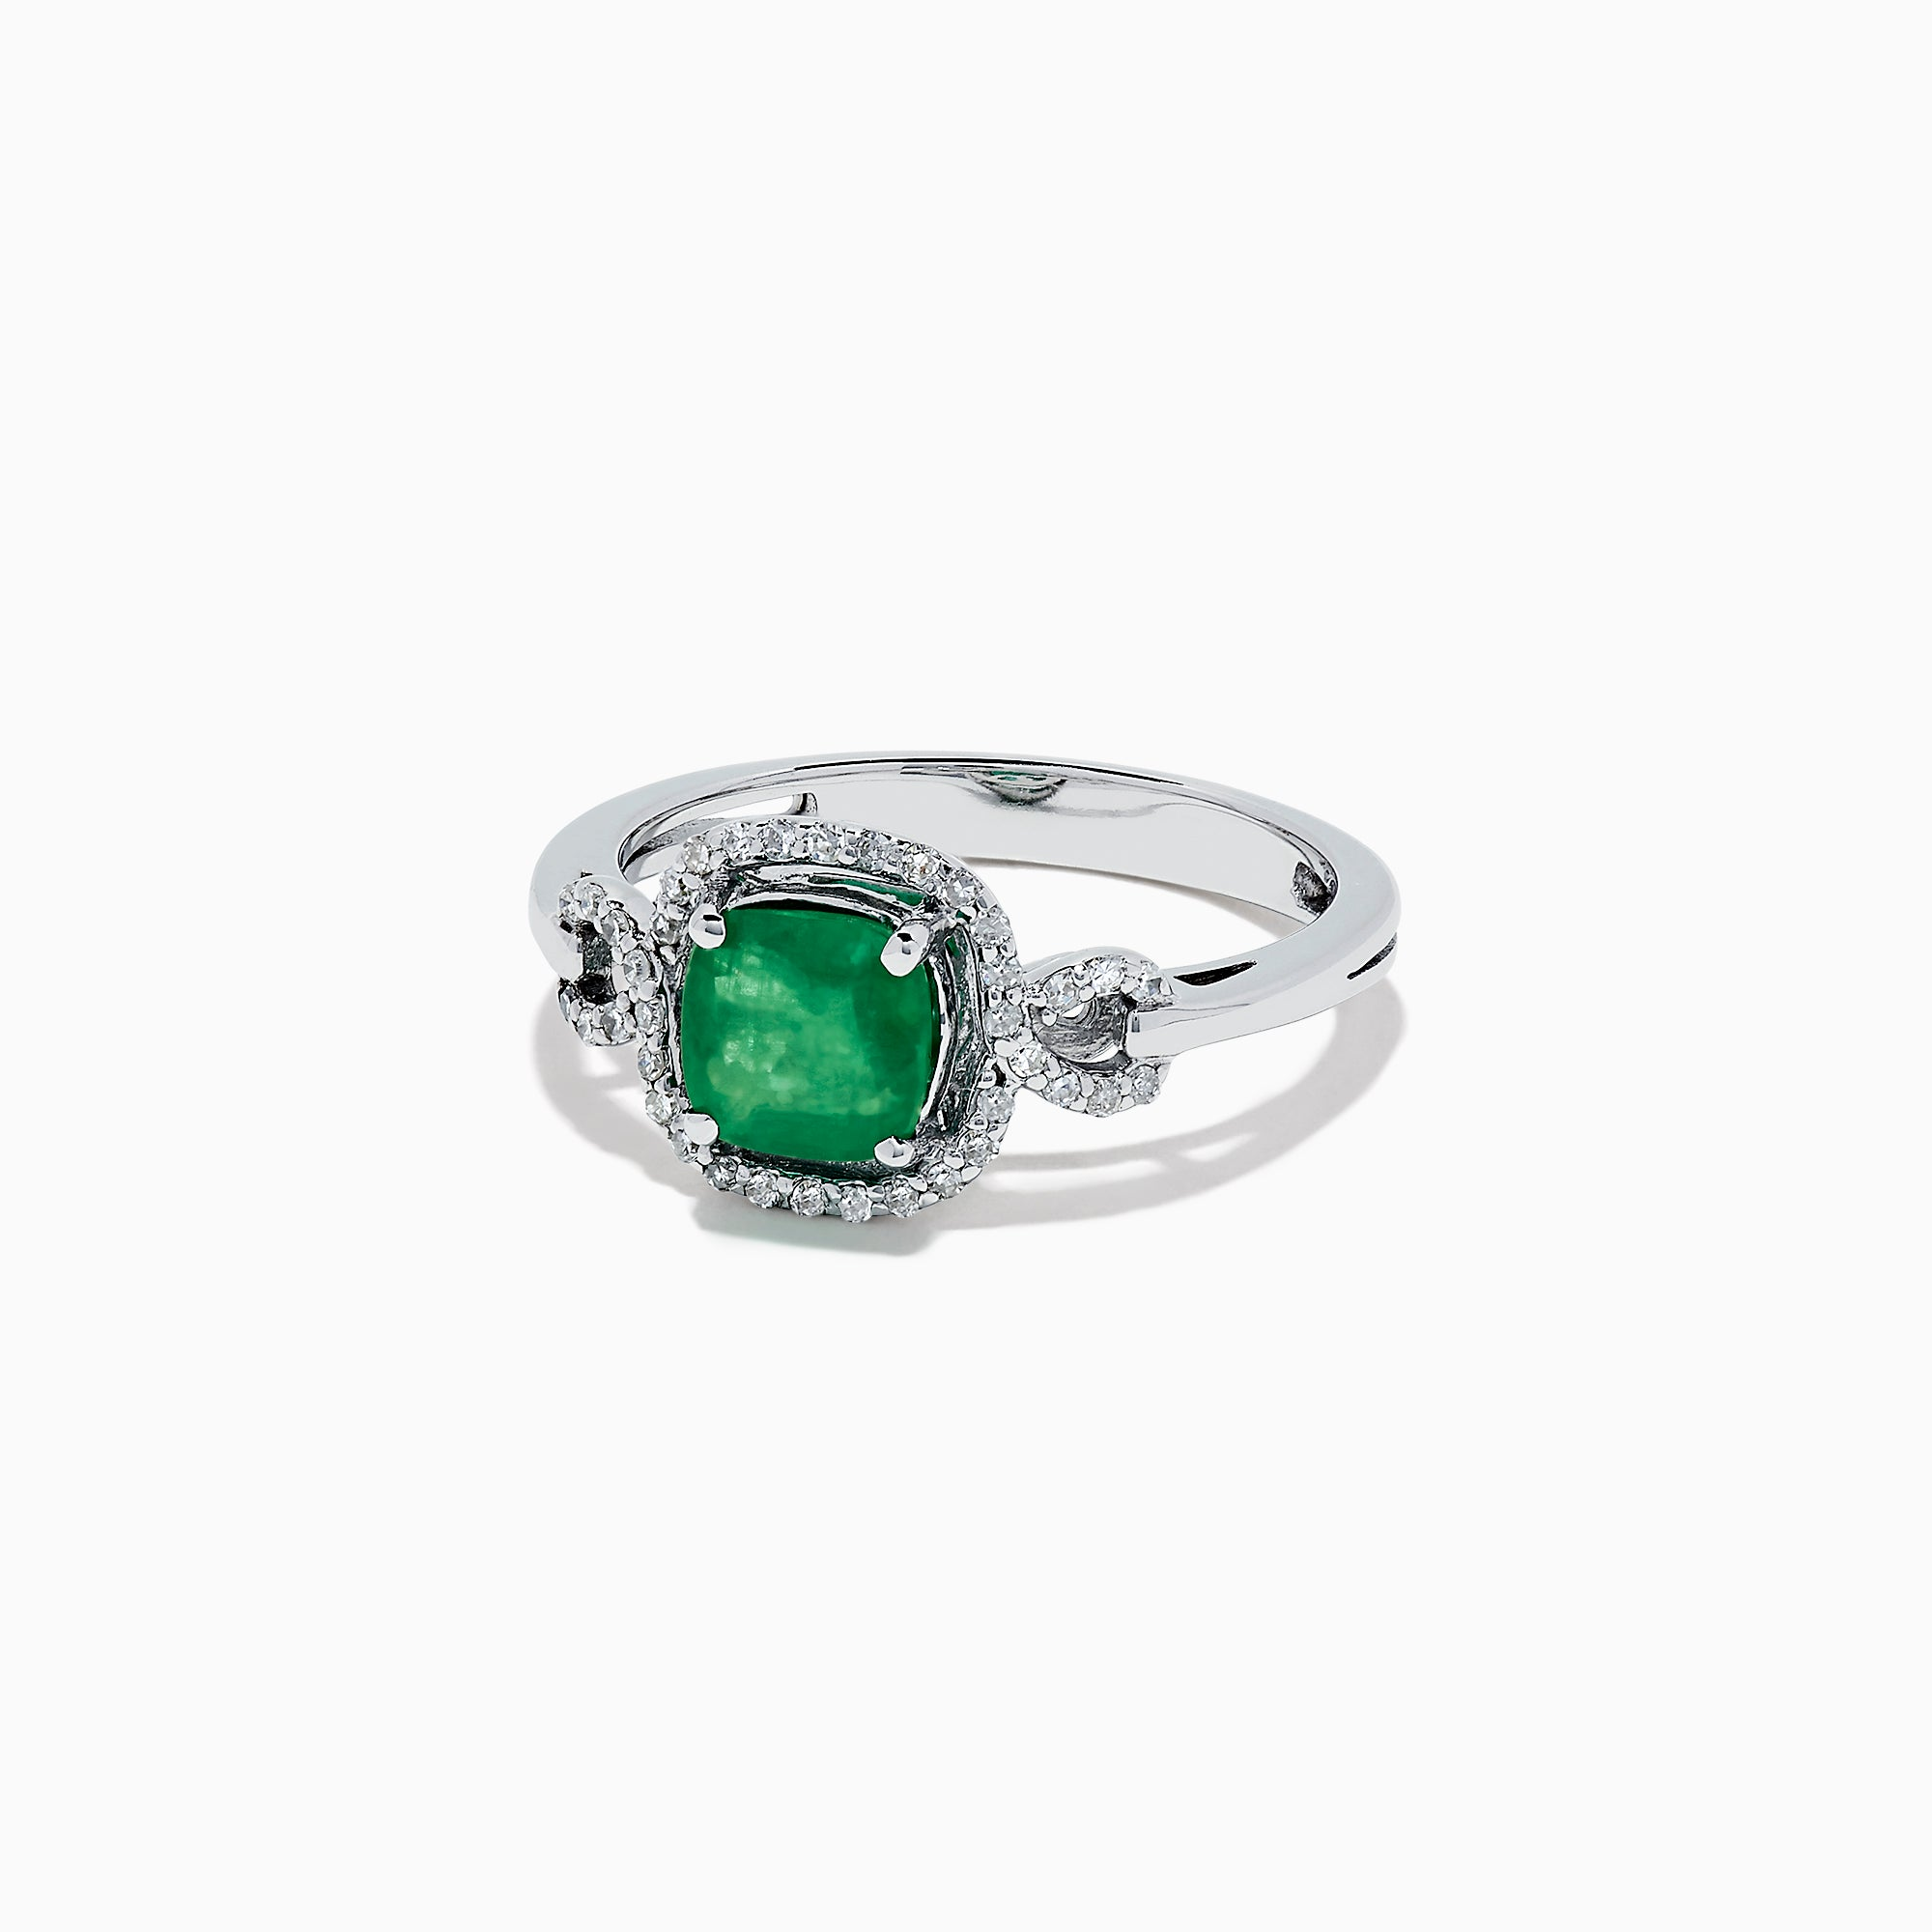 Effy Brasilica 14K White Gold Emerald and Diamond Ring, 0.96 TCW